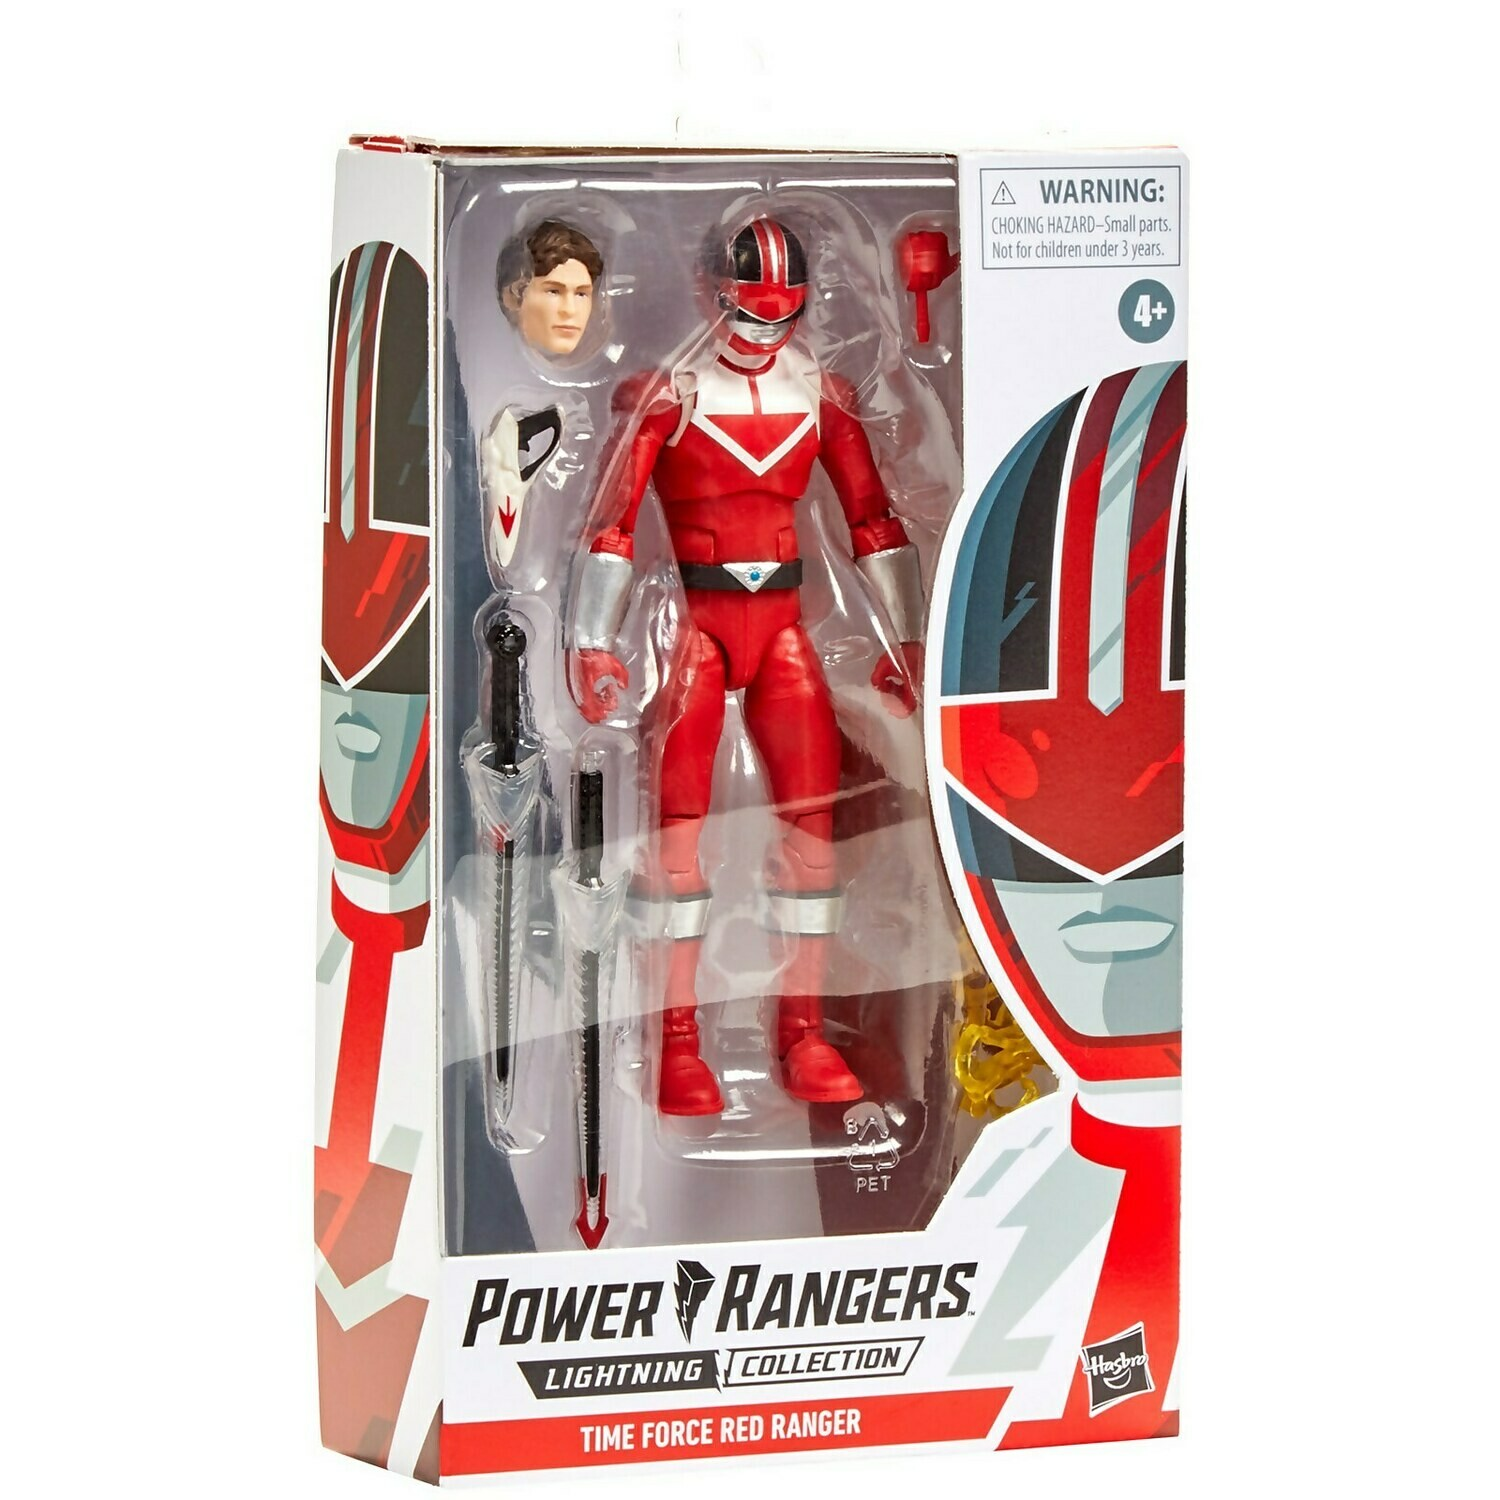 Hasbro Power Rangers Lightning Collection Time force Red Ranger 6-Inch Premium Collectible Action Figure